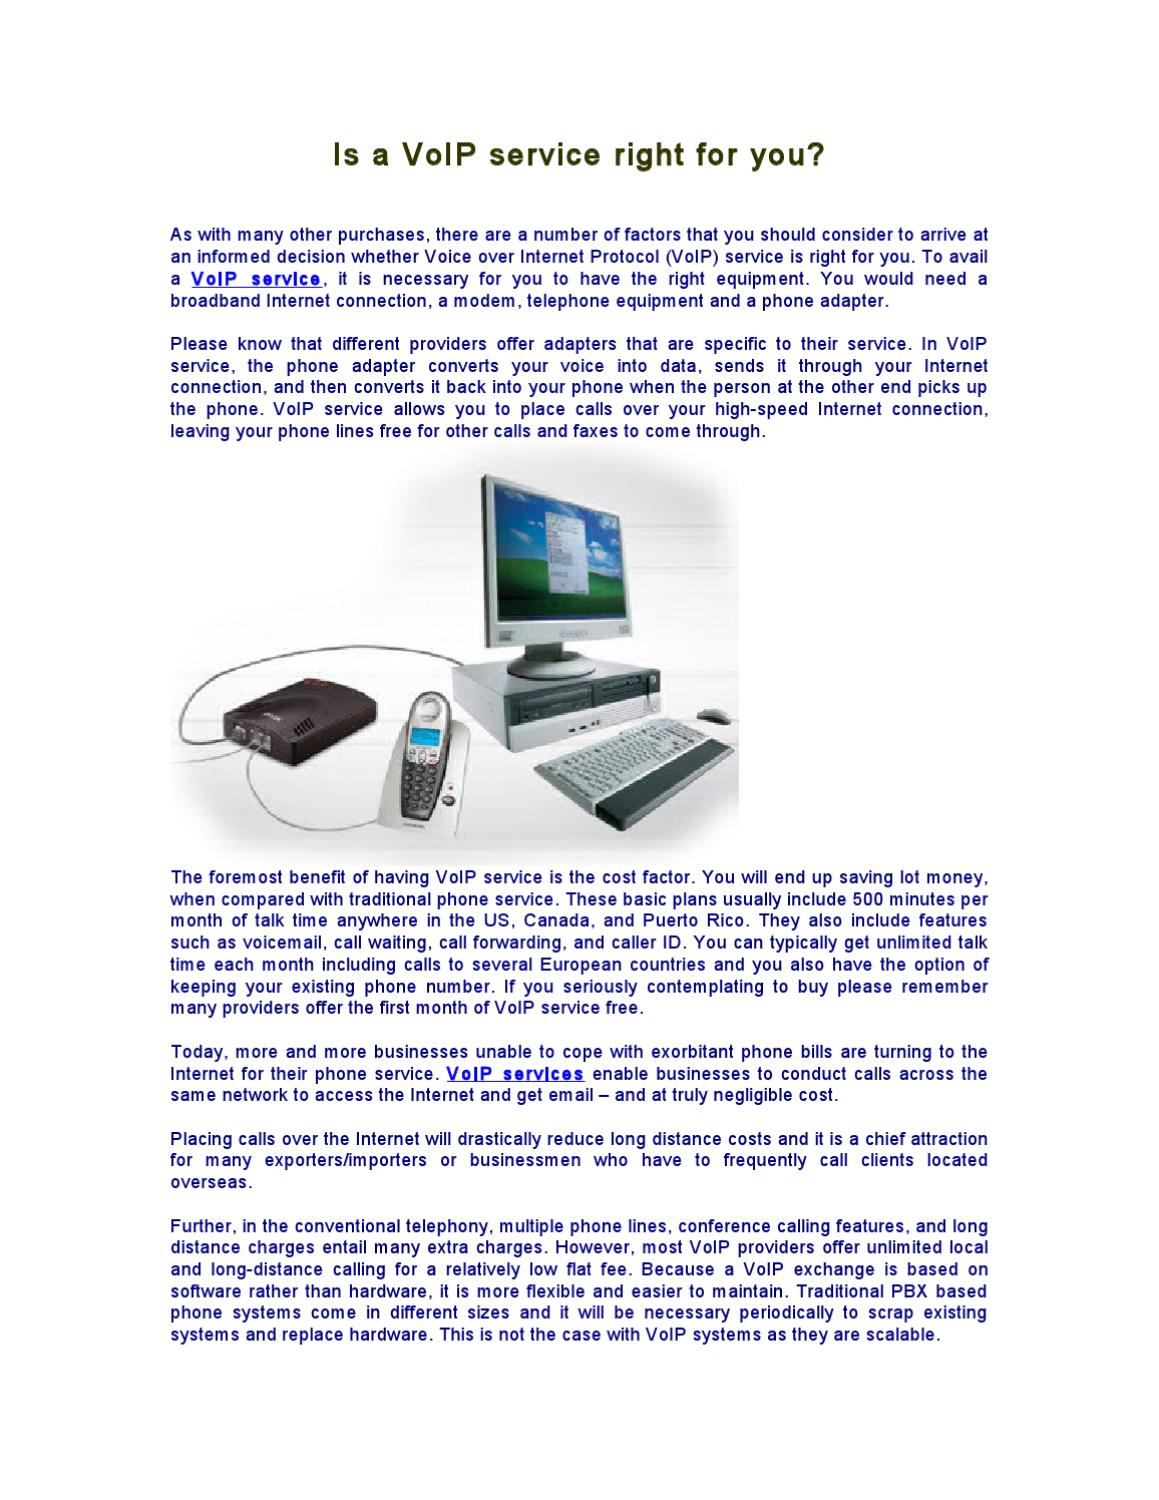 Is a VoIP service right for you? by James Allen - issuu